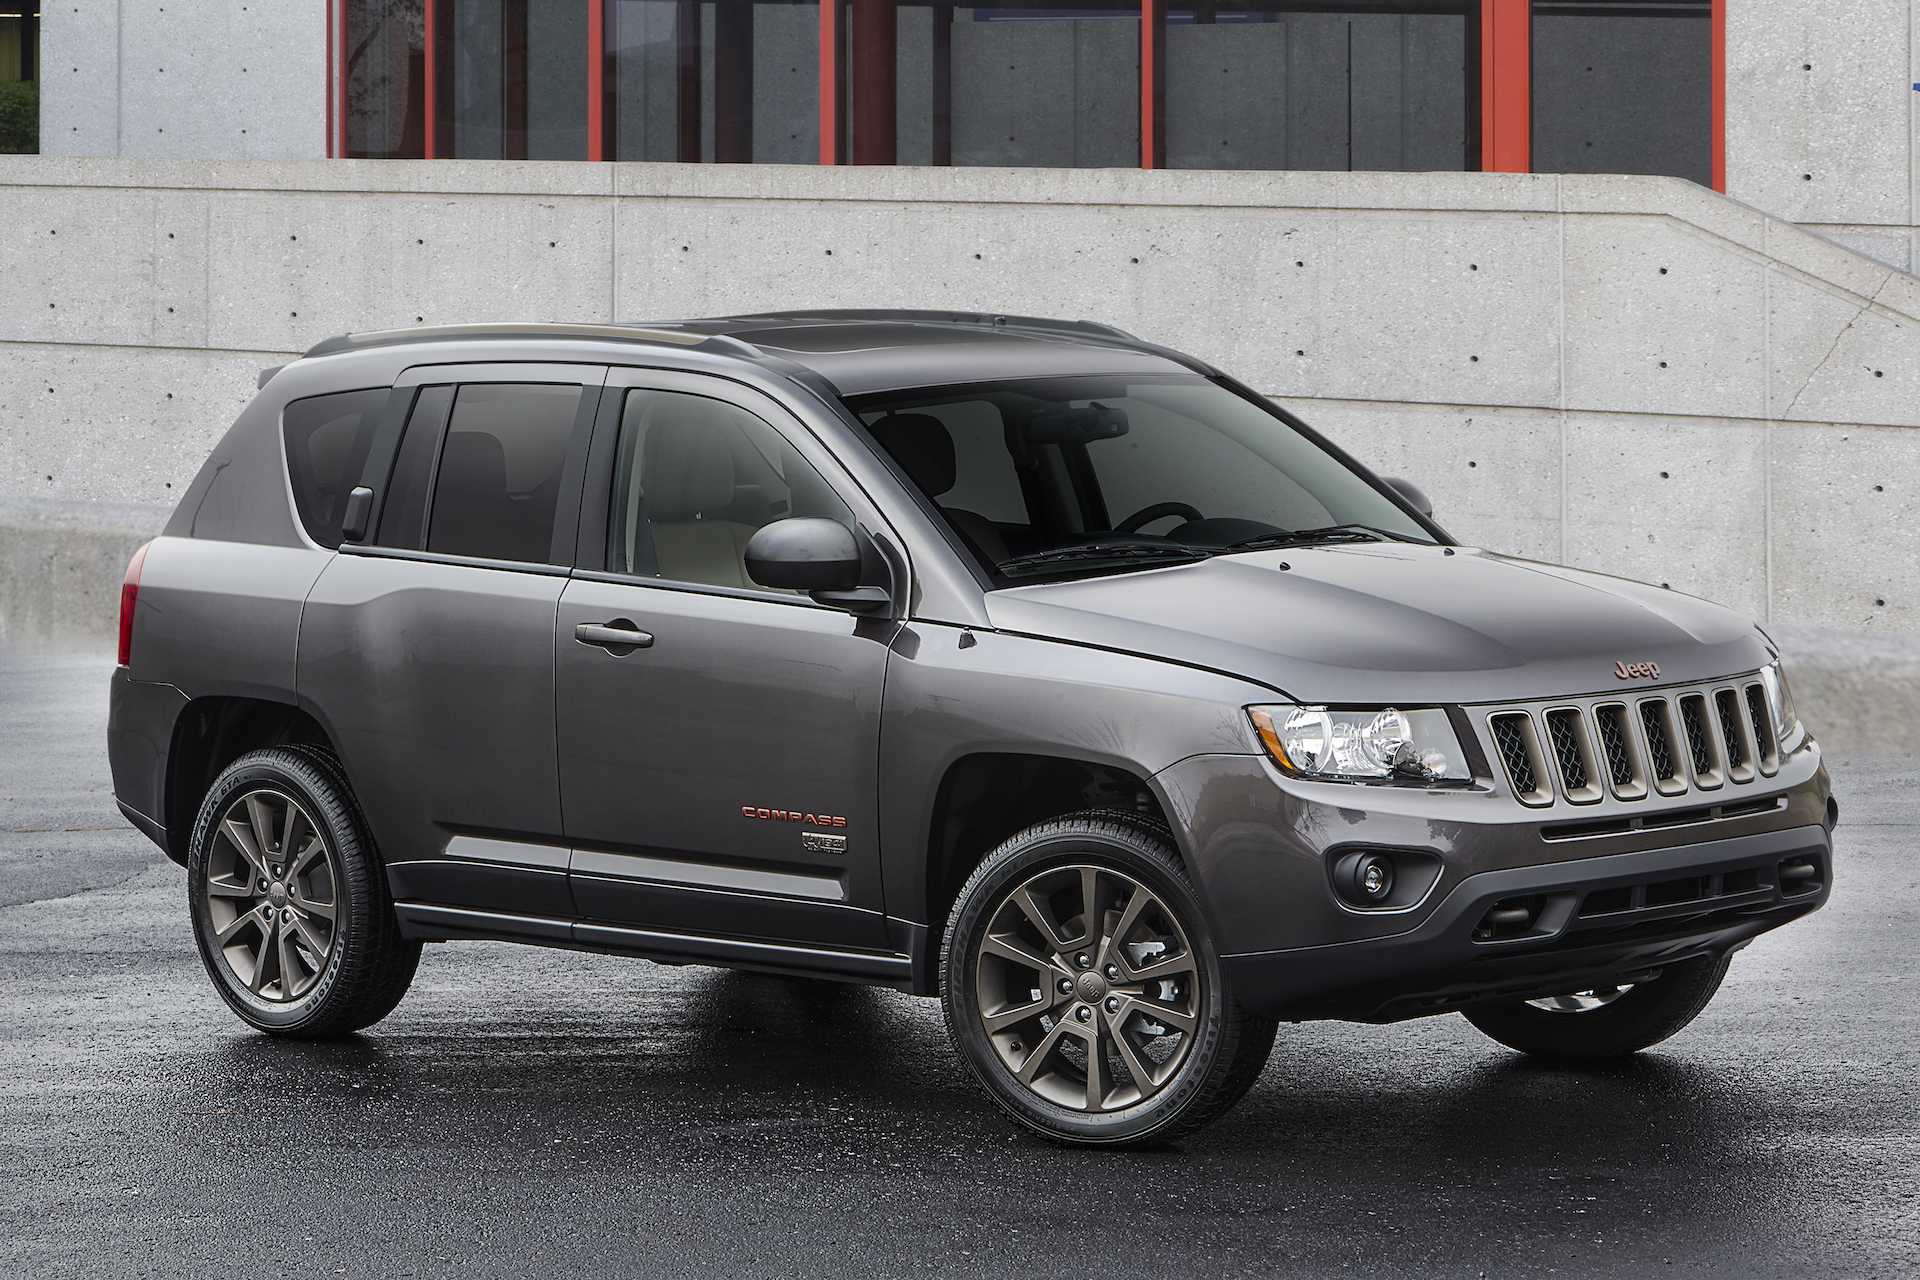 Gmc Colorado Springs >> 2017 Jeep Compass Review, Ratings, Specs, Prices, and Photos - The Car Connection